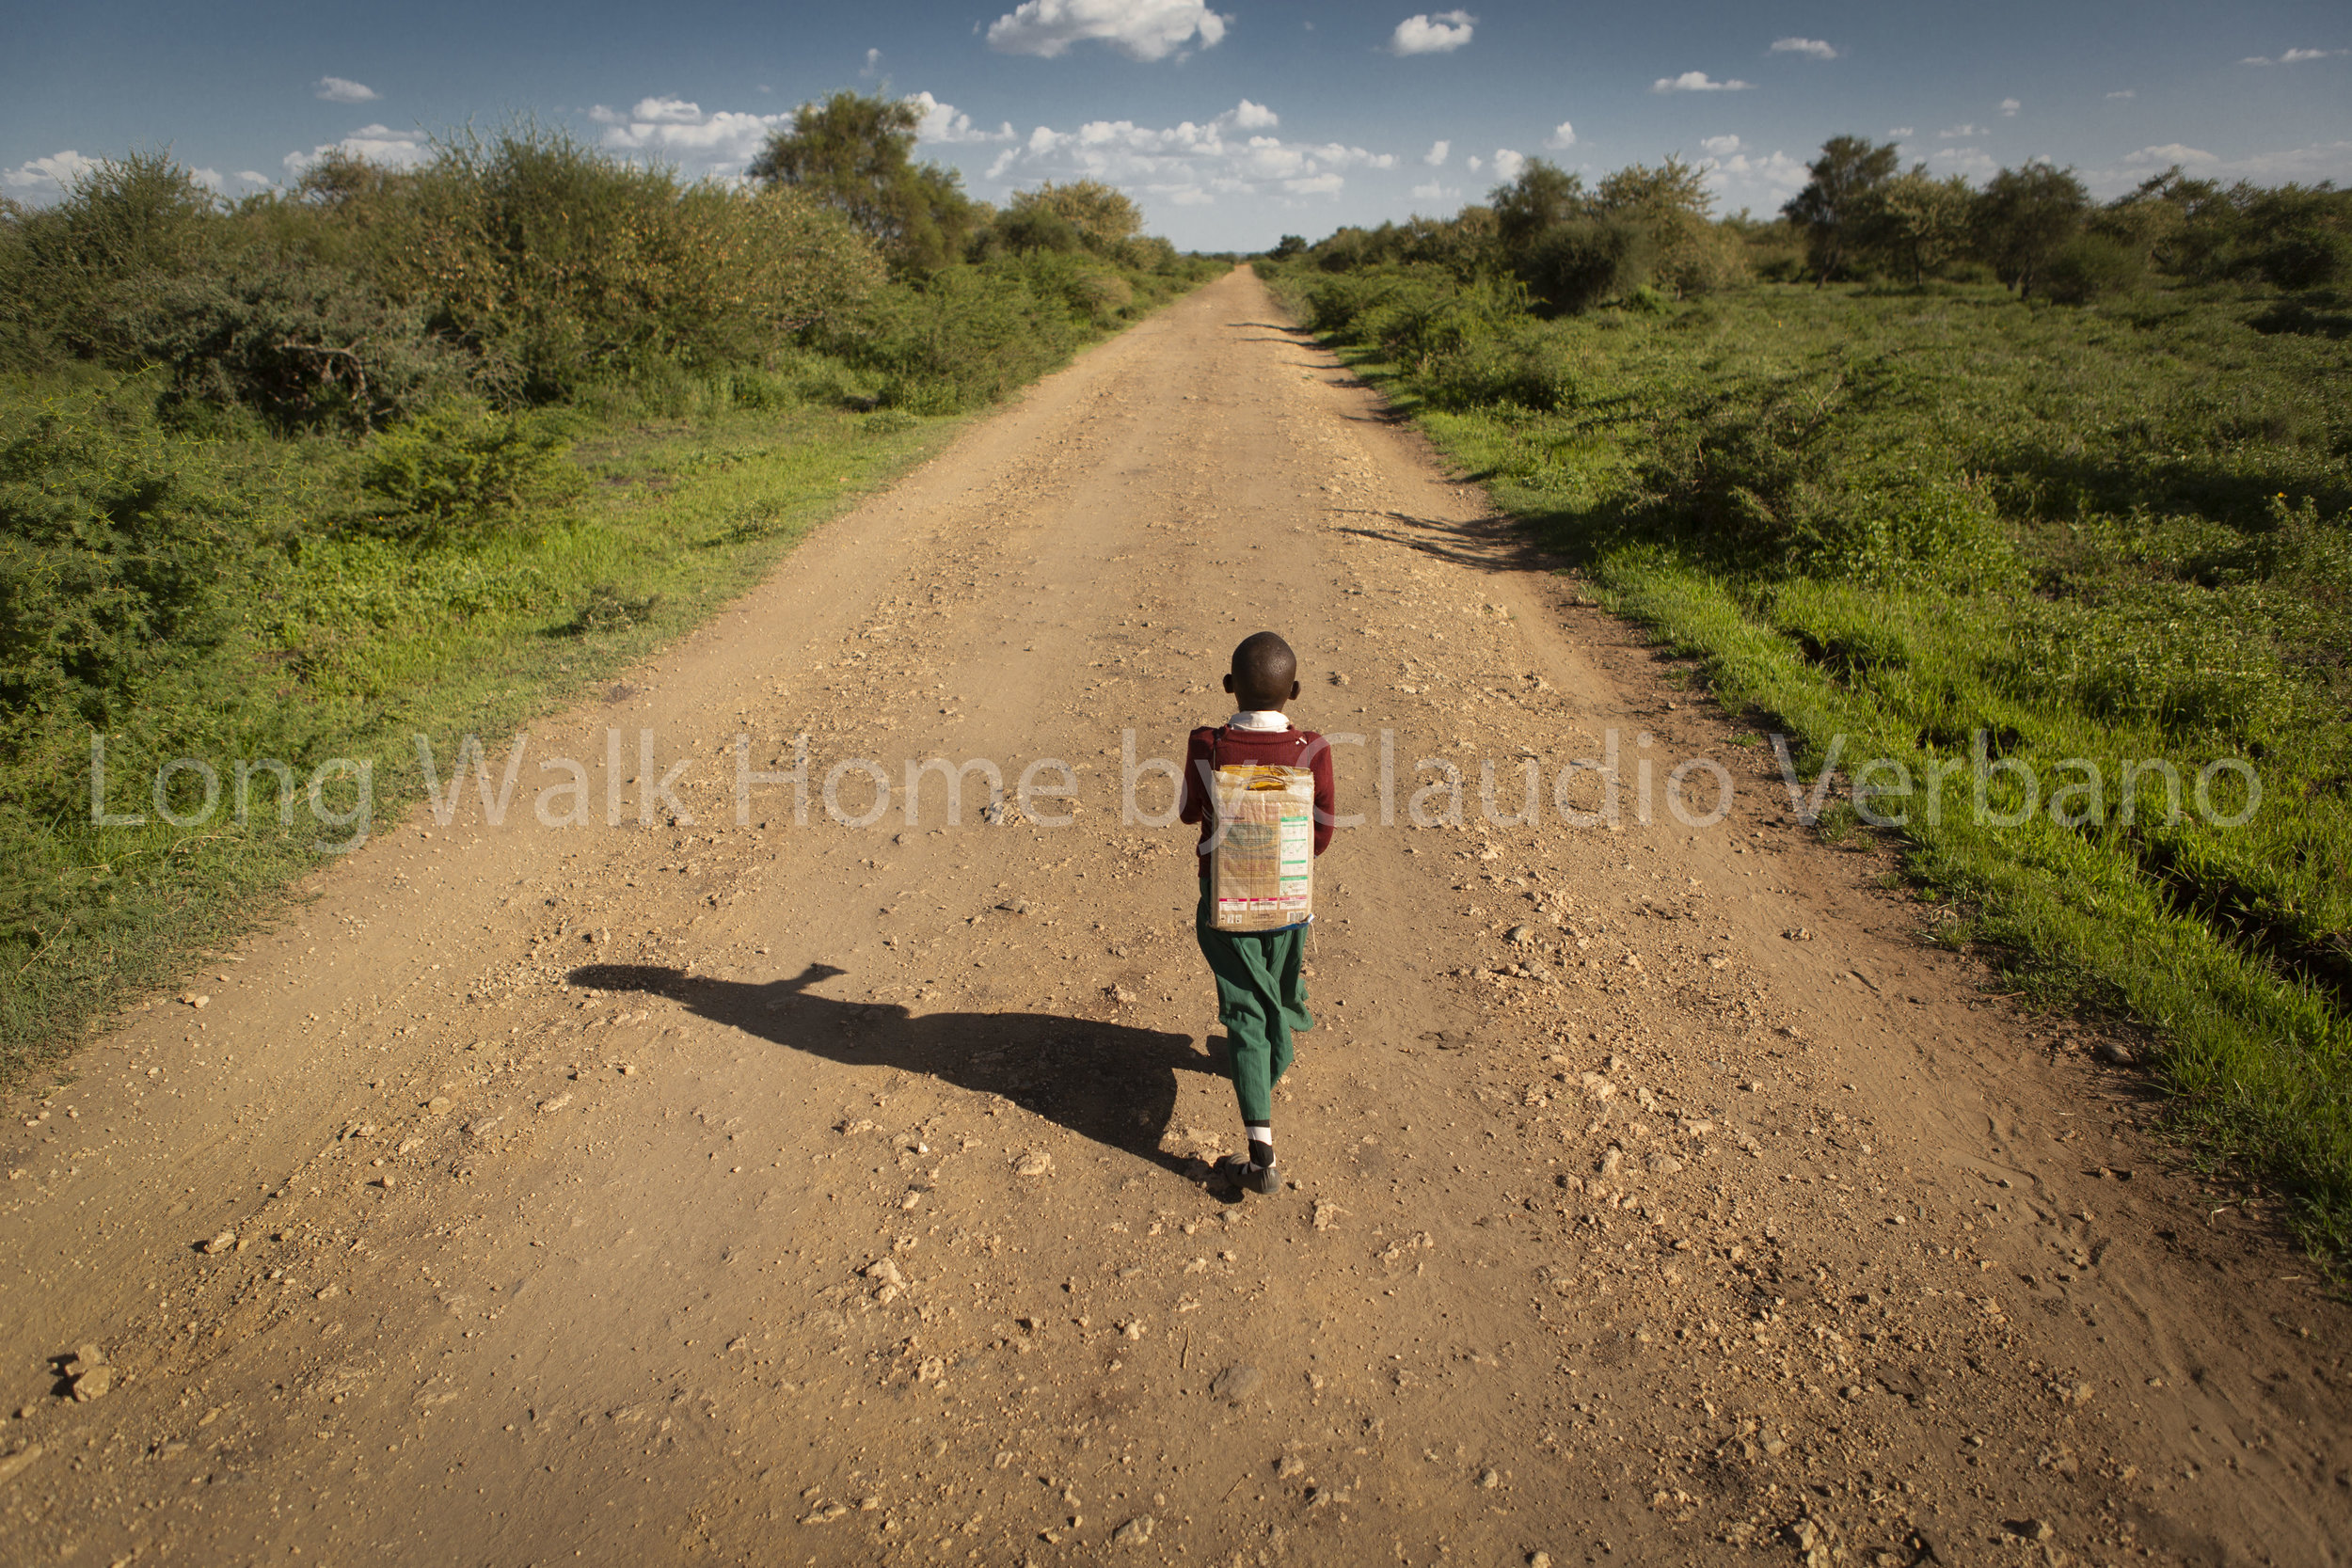 Ten year old Pendo on her daily way to school. Everyday she has to walk about 40 kilometers to school and back home for her education.